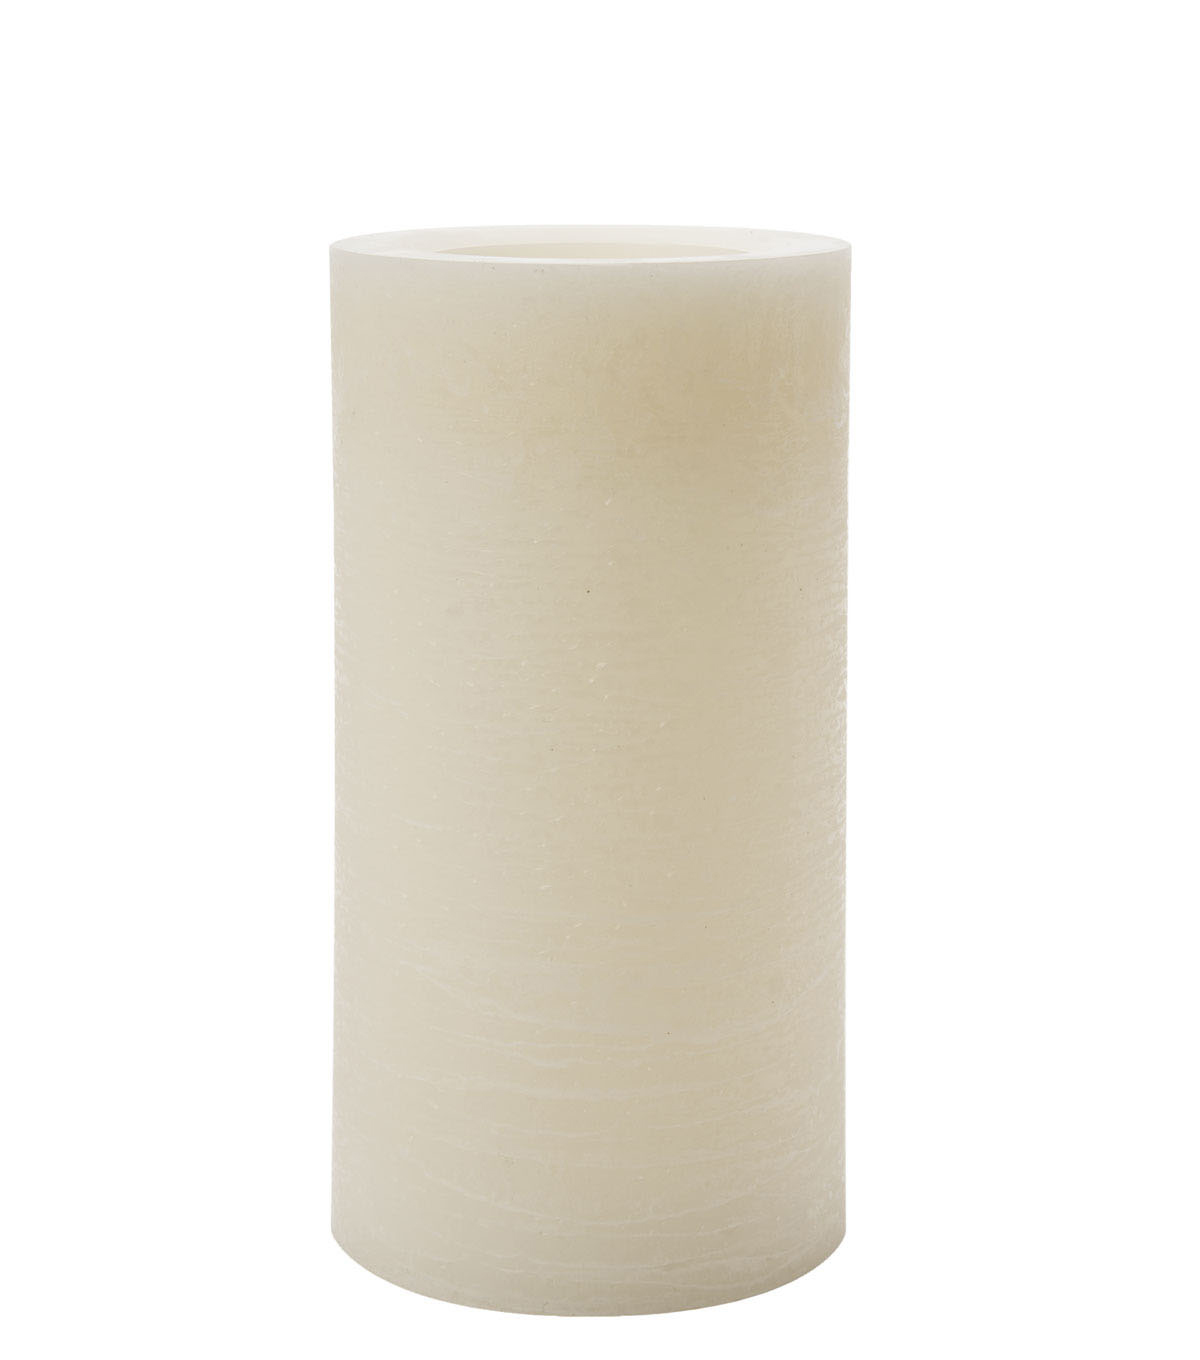 Hudson 43 Candle & Light Collection 4X8 Rustic Pillar With 5 Hour  Timer